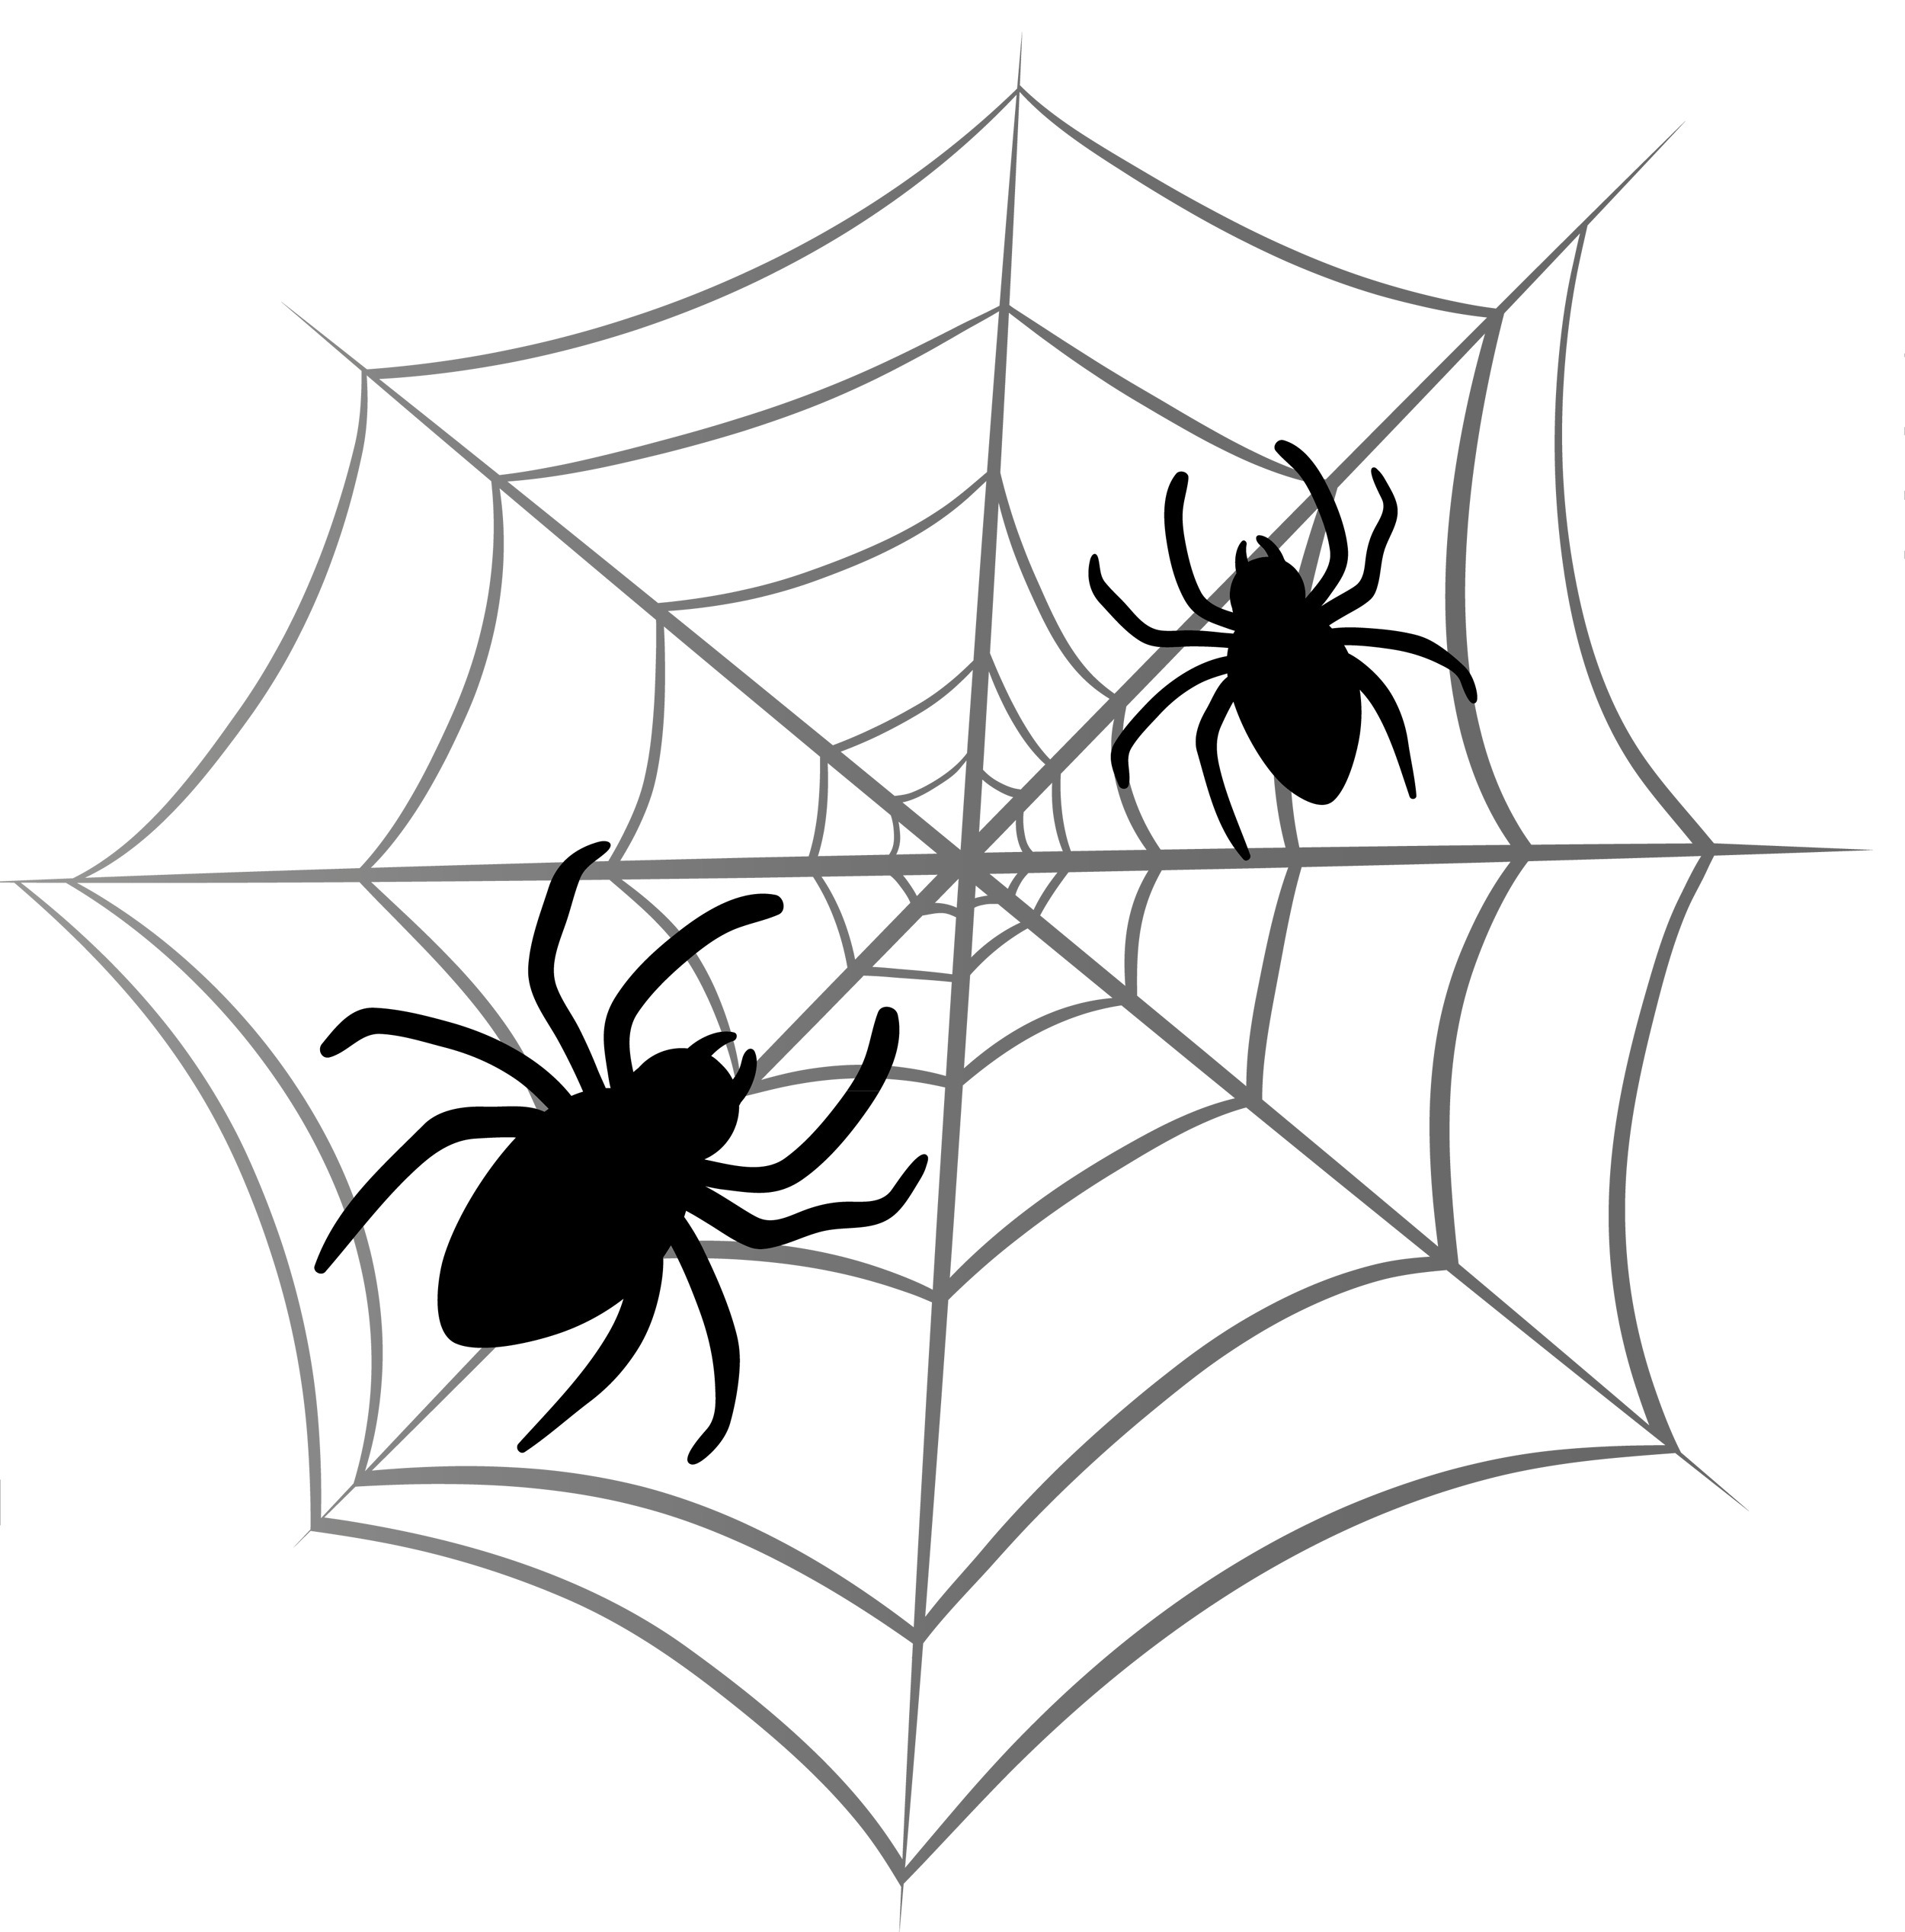 Png google search pinterest. Clipart halloween corner